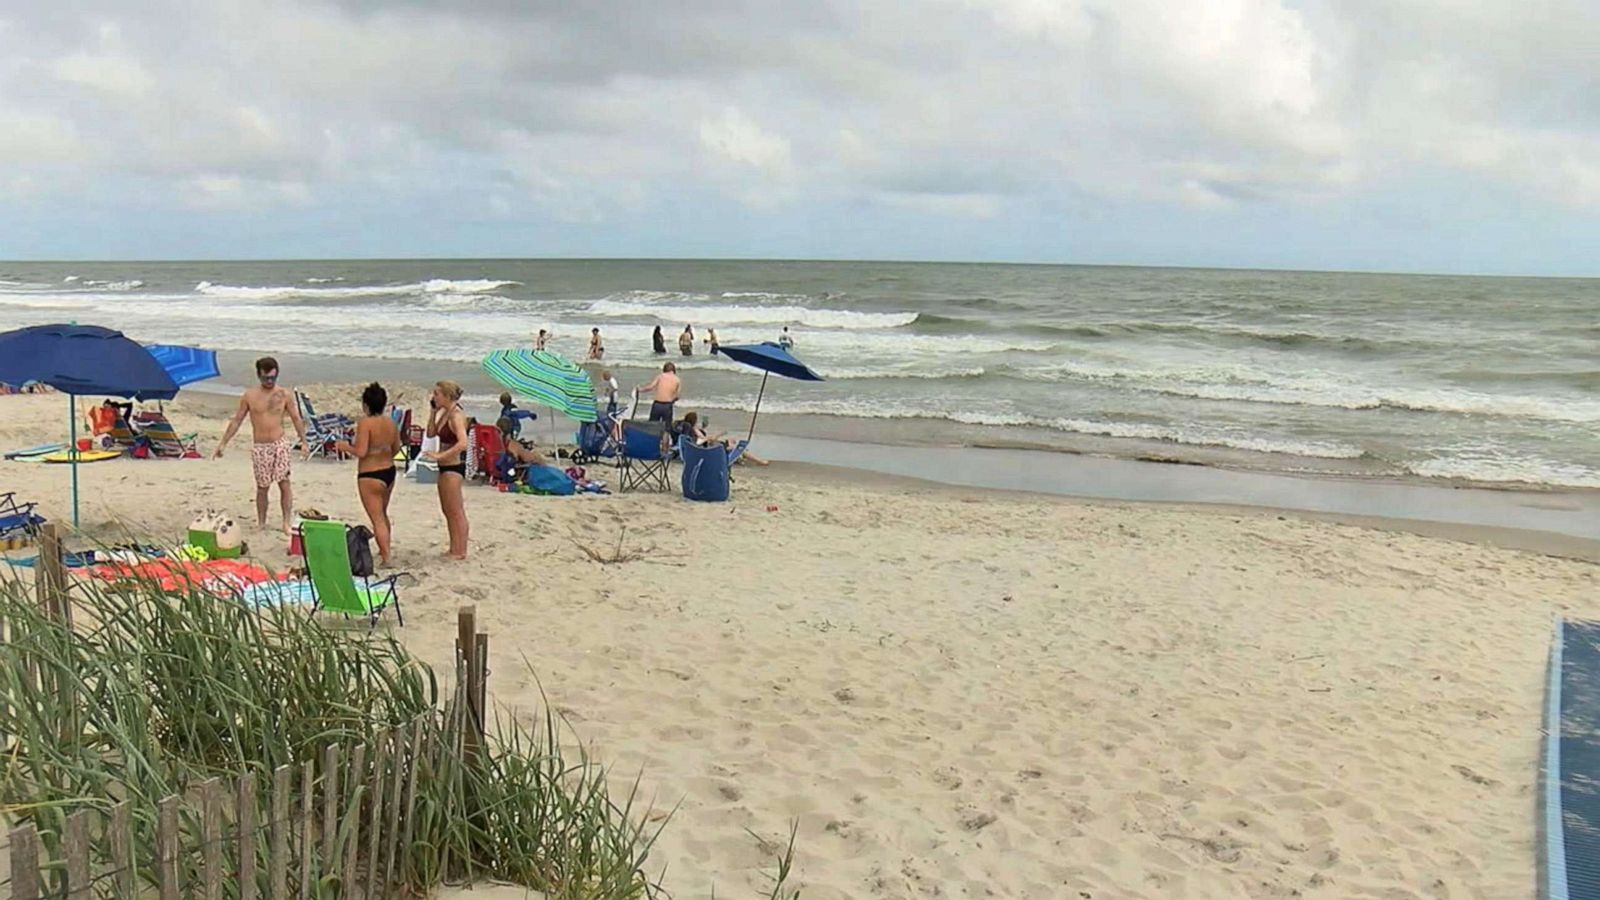 19 Year Old Surfer Wounded In Possible Shark Attack Off North Carolina Coast Abc News